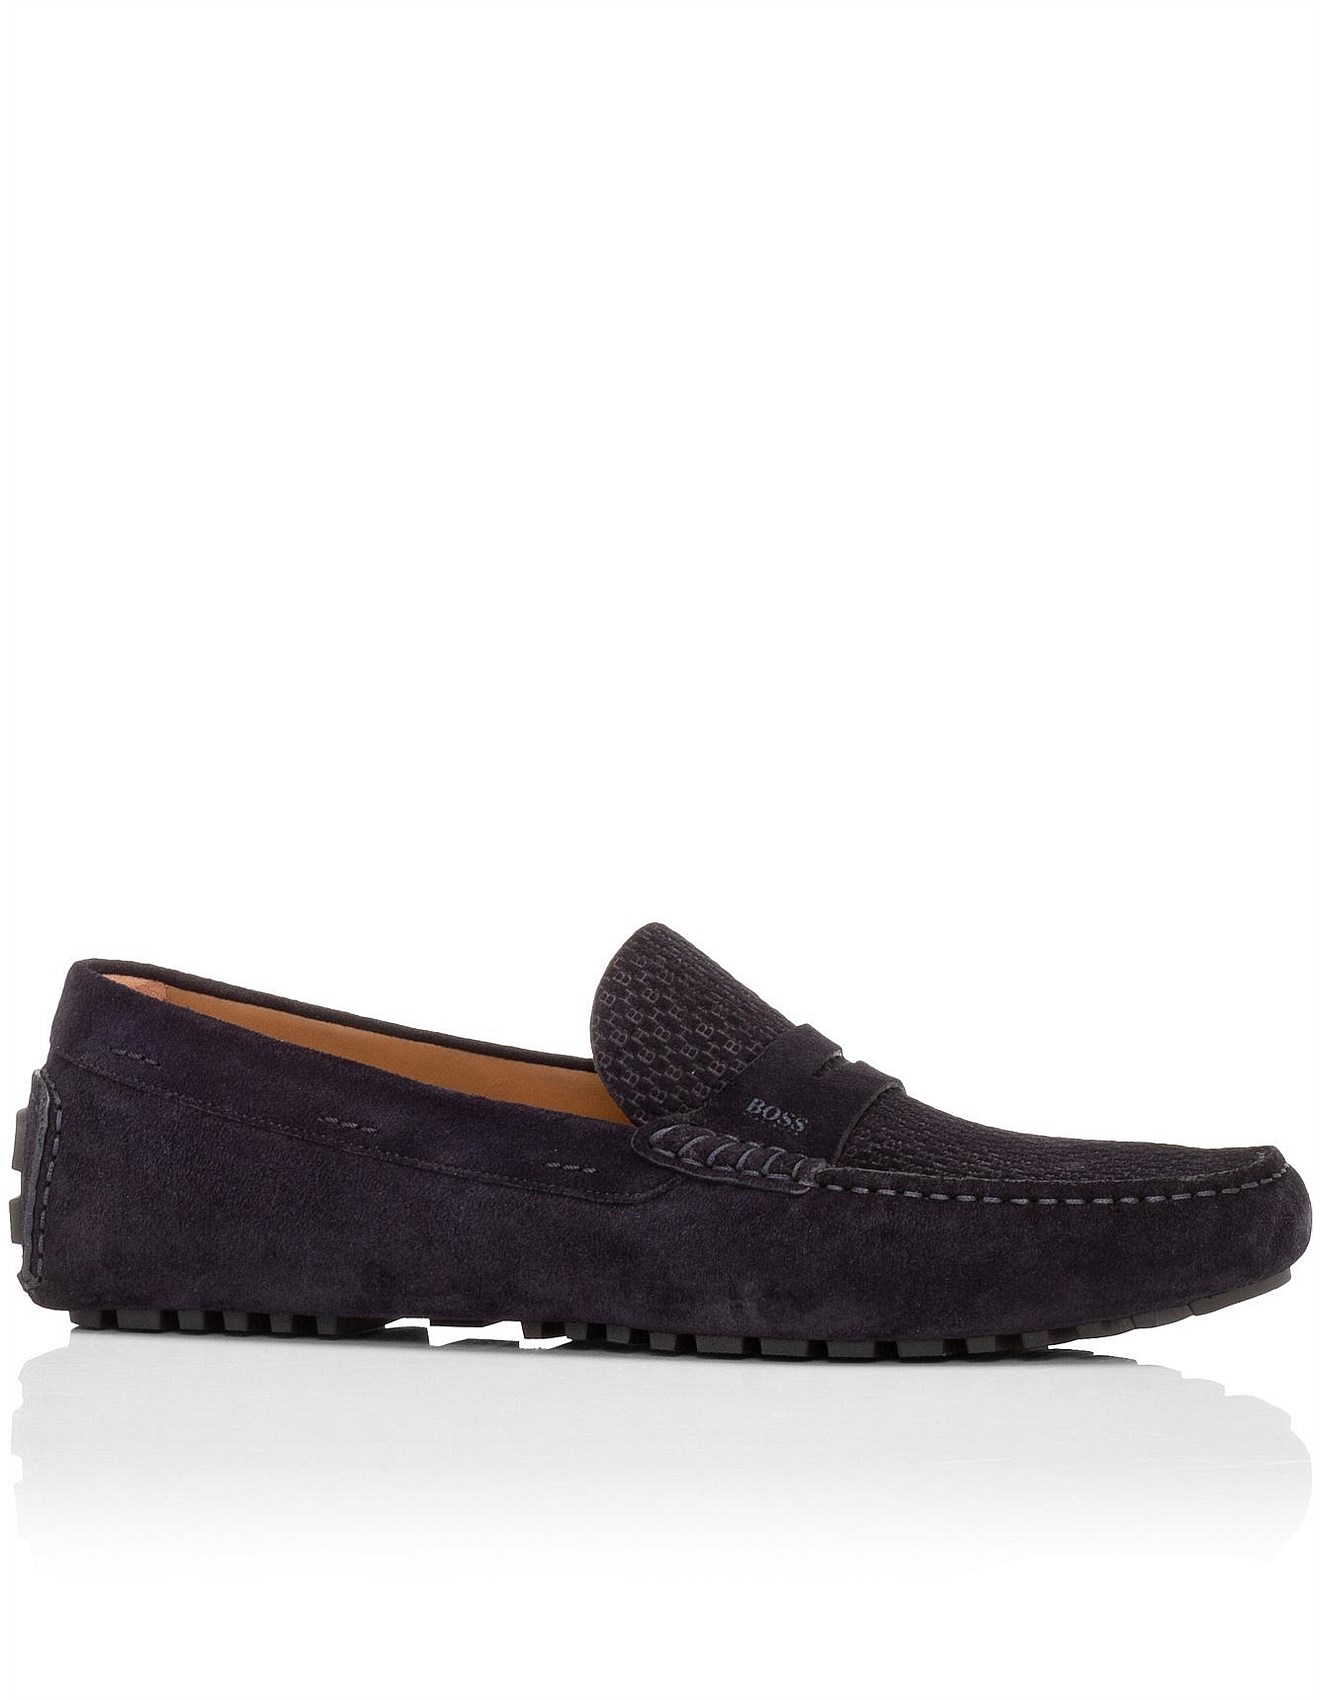 fe53f905a98 DRIVER MOCCASIN SUEDE